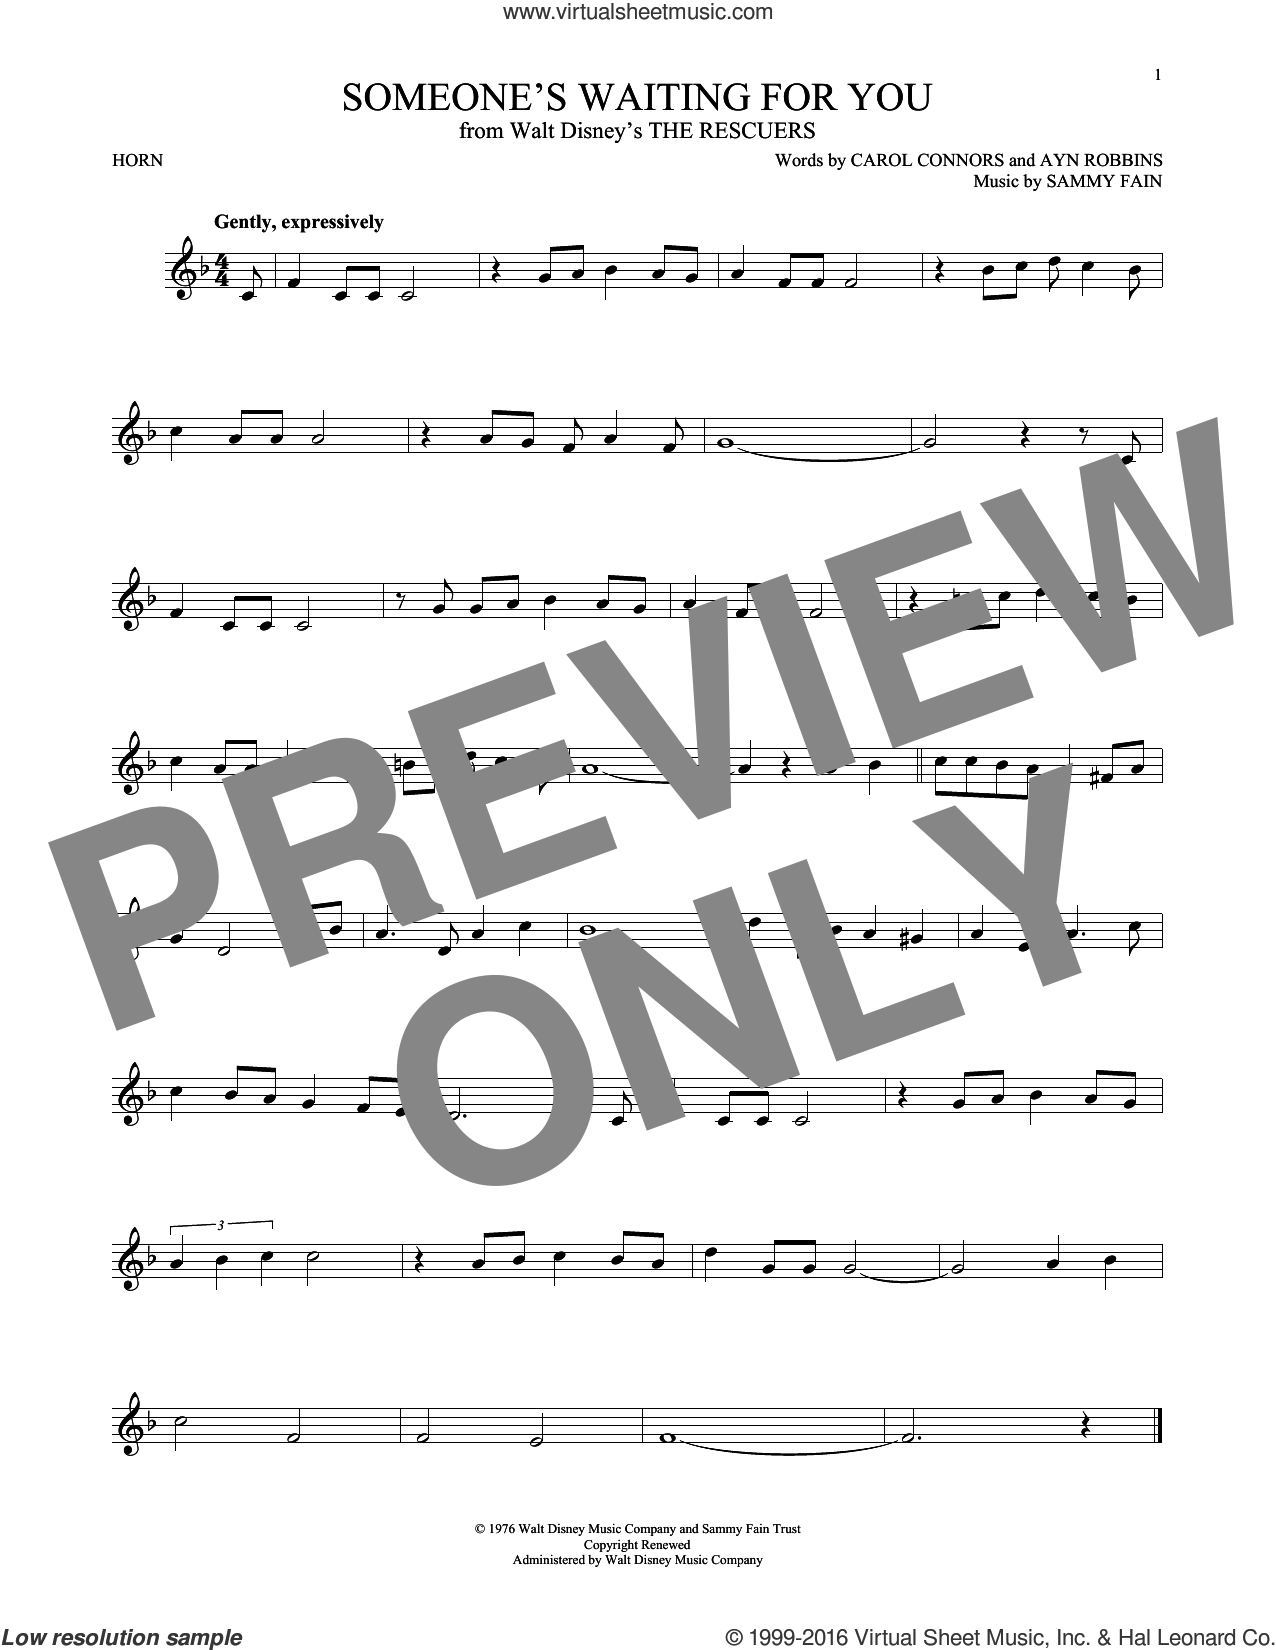 Someone's Waiting For You sheet music for horn solo by Sammy Fain, Ayn Robbins and Carol Connors, intermediate skill level